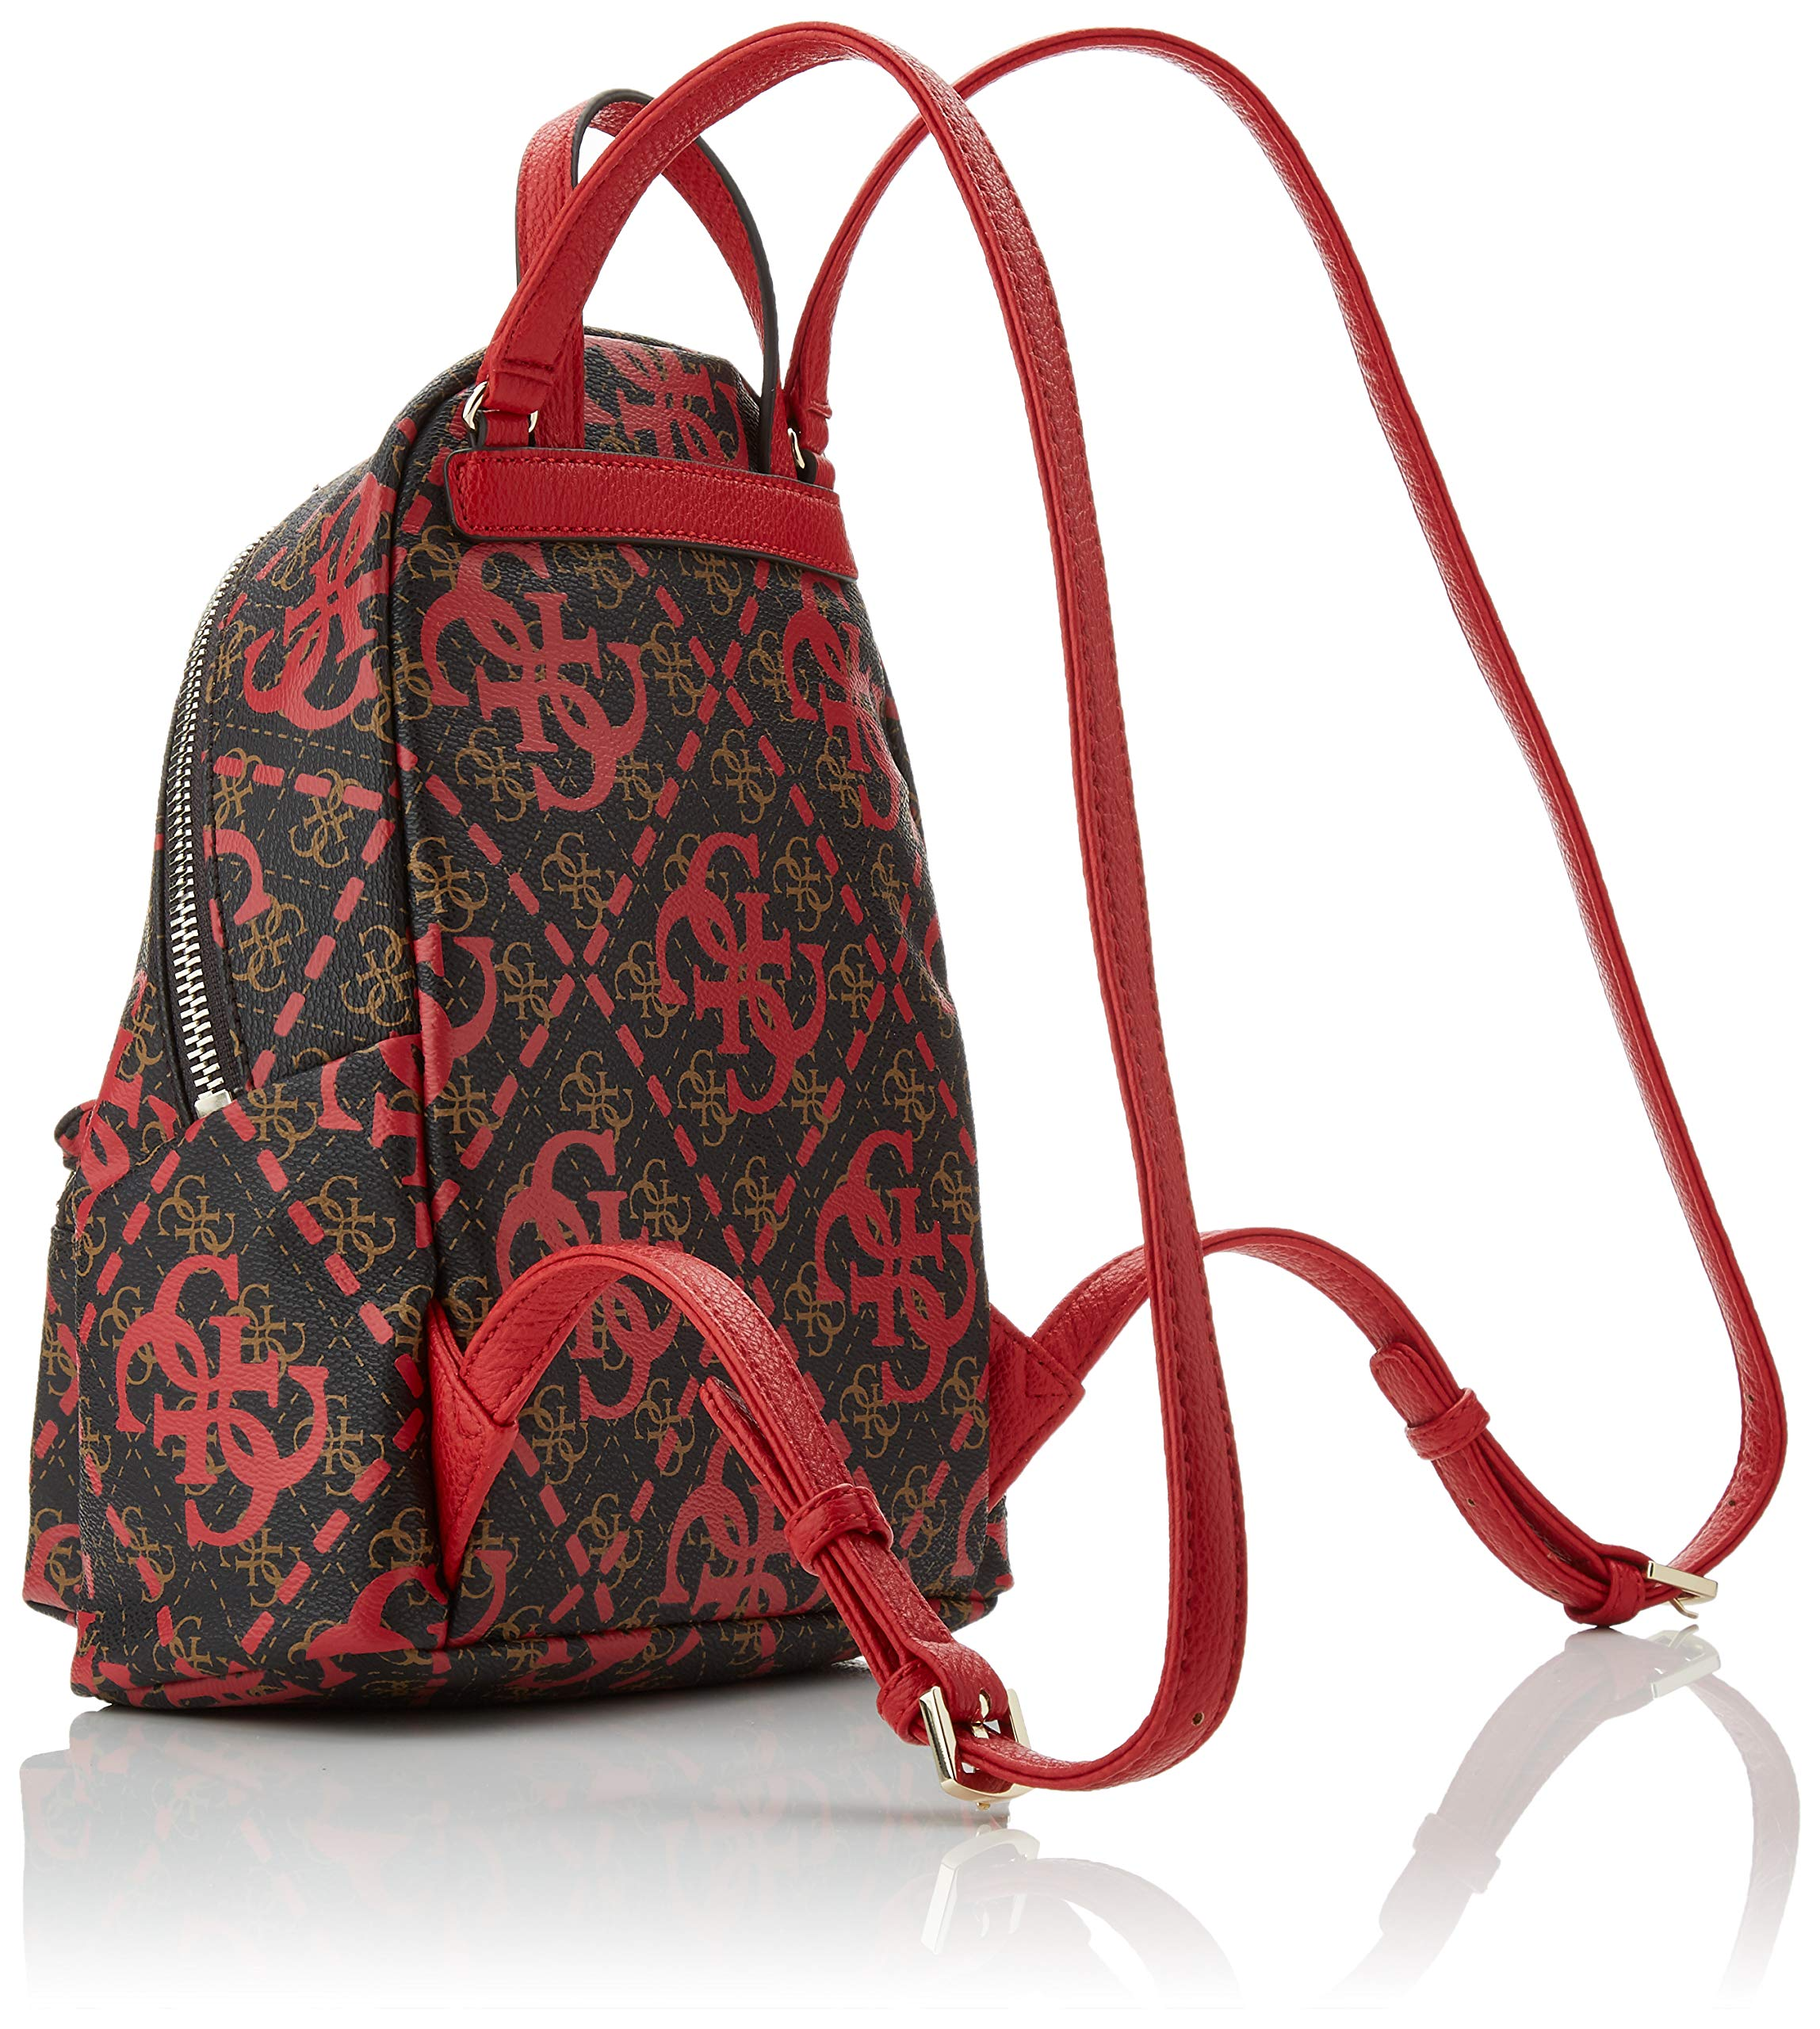 91K7S0JjfdL - Guess - Leeza Backpack, Mujer, Multicolor (Red Multi), 22x29x10.5 cm (W x H L)